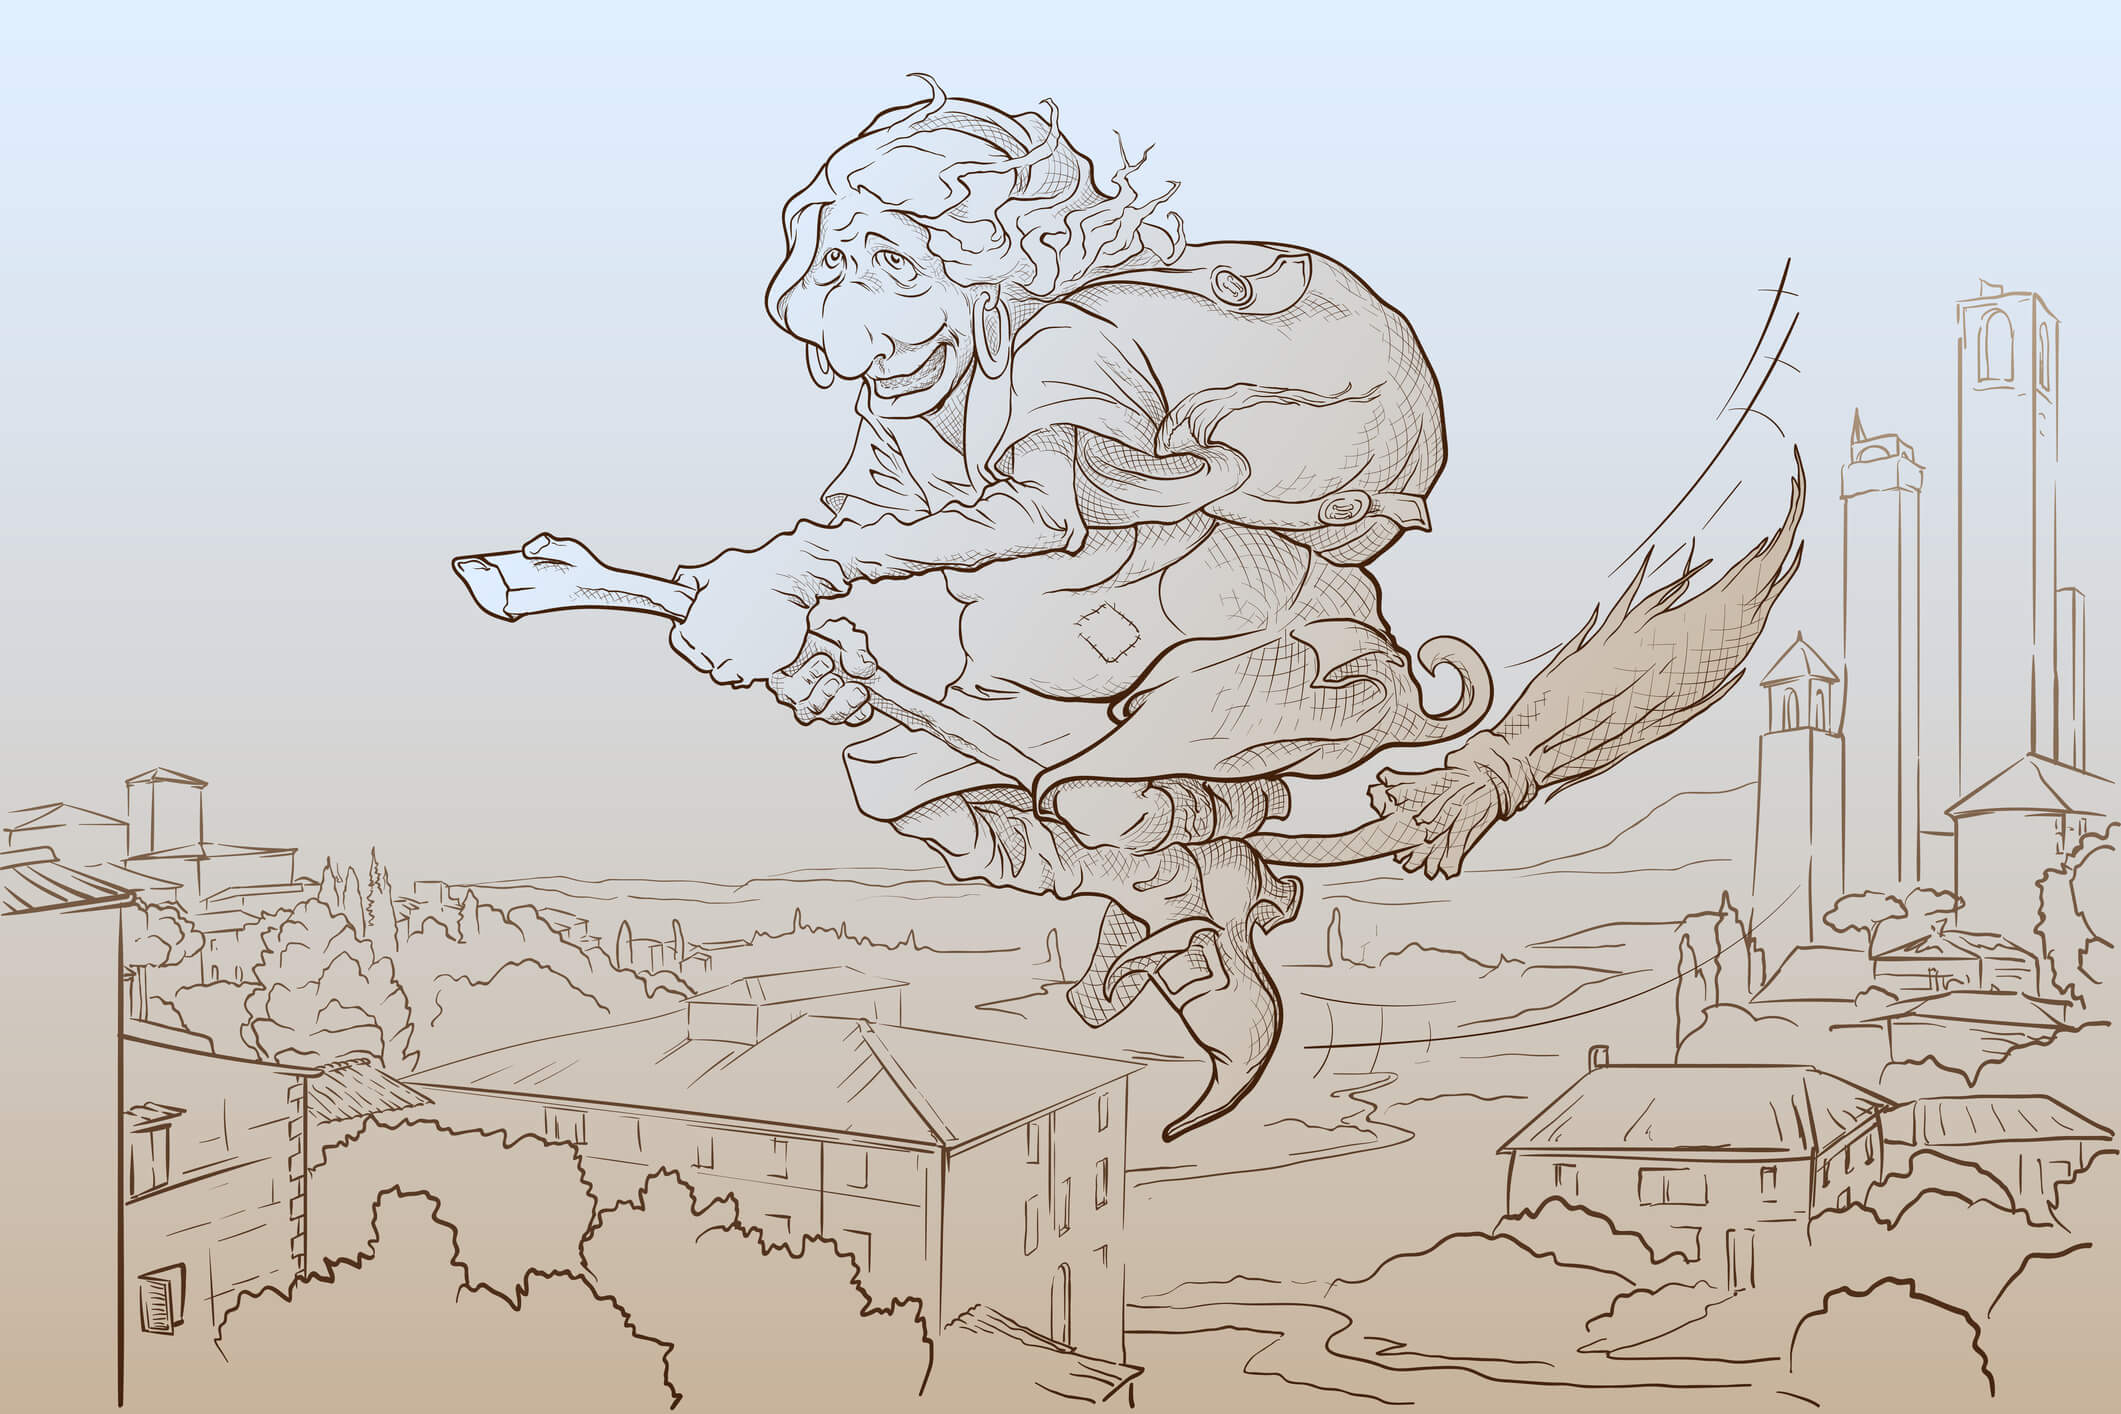 La Befana - the Italian colleague of Santa. An old lady flying on the broom on the Epiphany eve over San Gimignano and delivering gifts to children. EPS8 vector illustration in a simple sketch style.